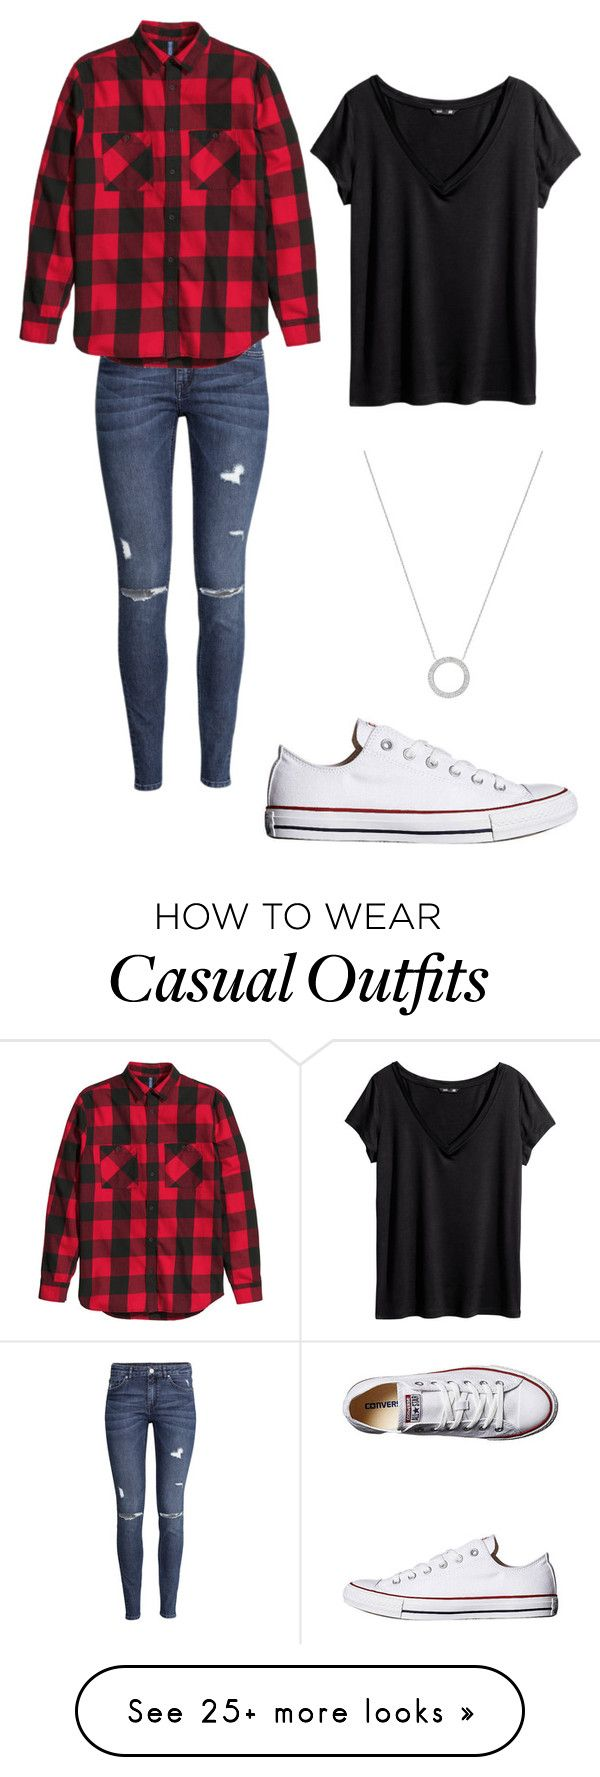 """""""Casual Outfit"""" by kittychloe on Polyvore featuring H&M, Converse and Michael Kors"""